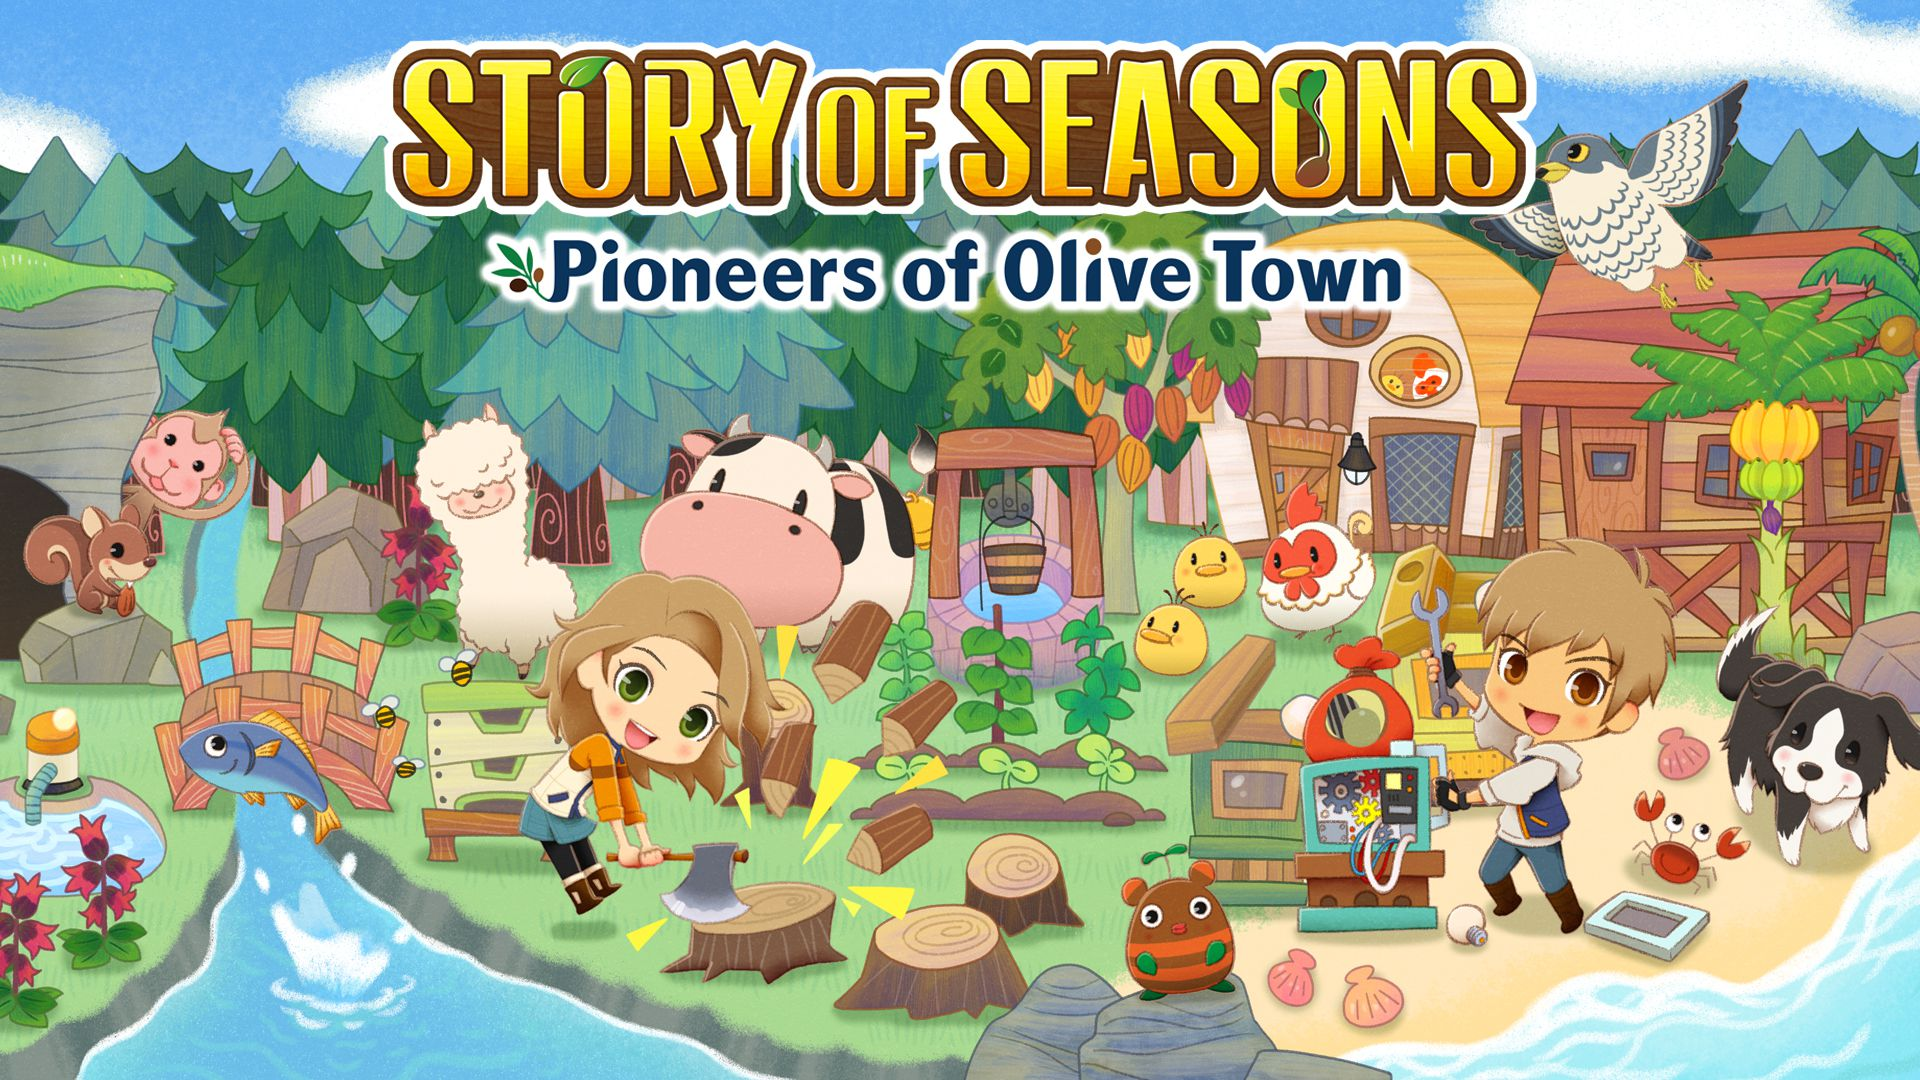 Story of Seasons Pioneers of Olive Town Principal